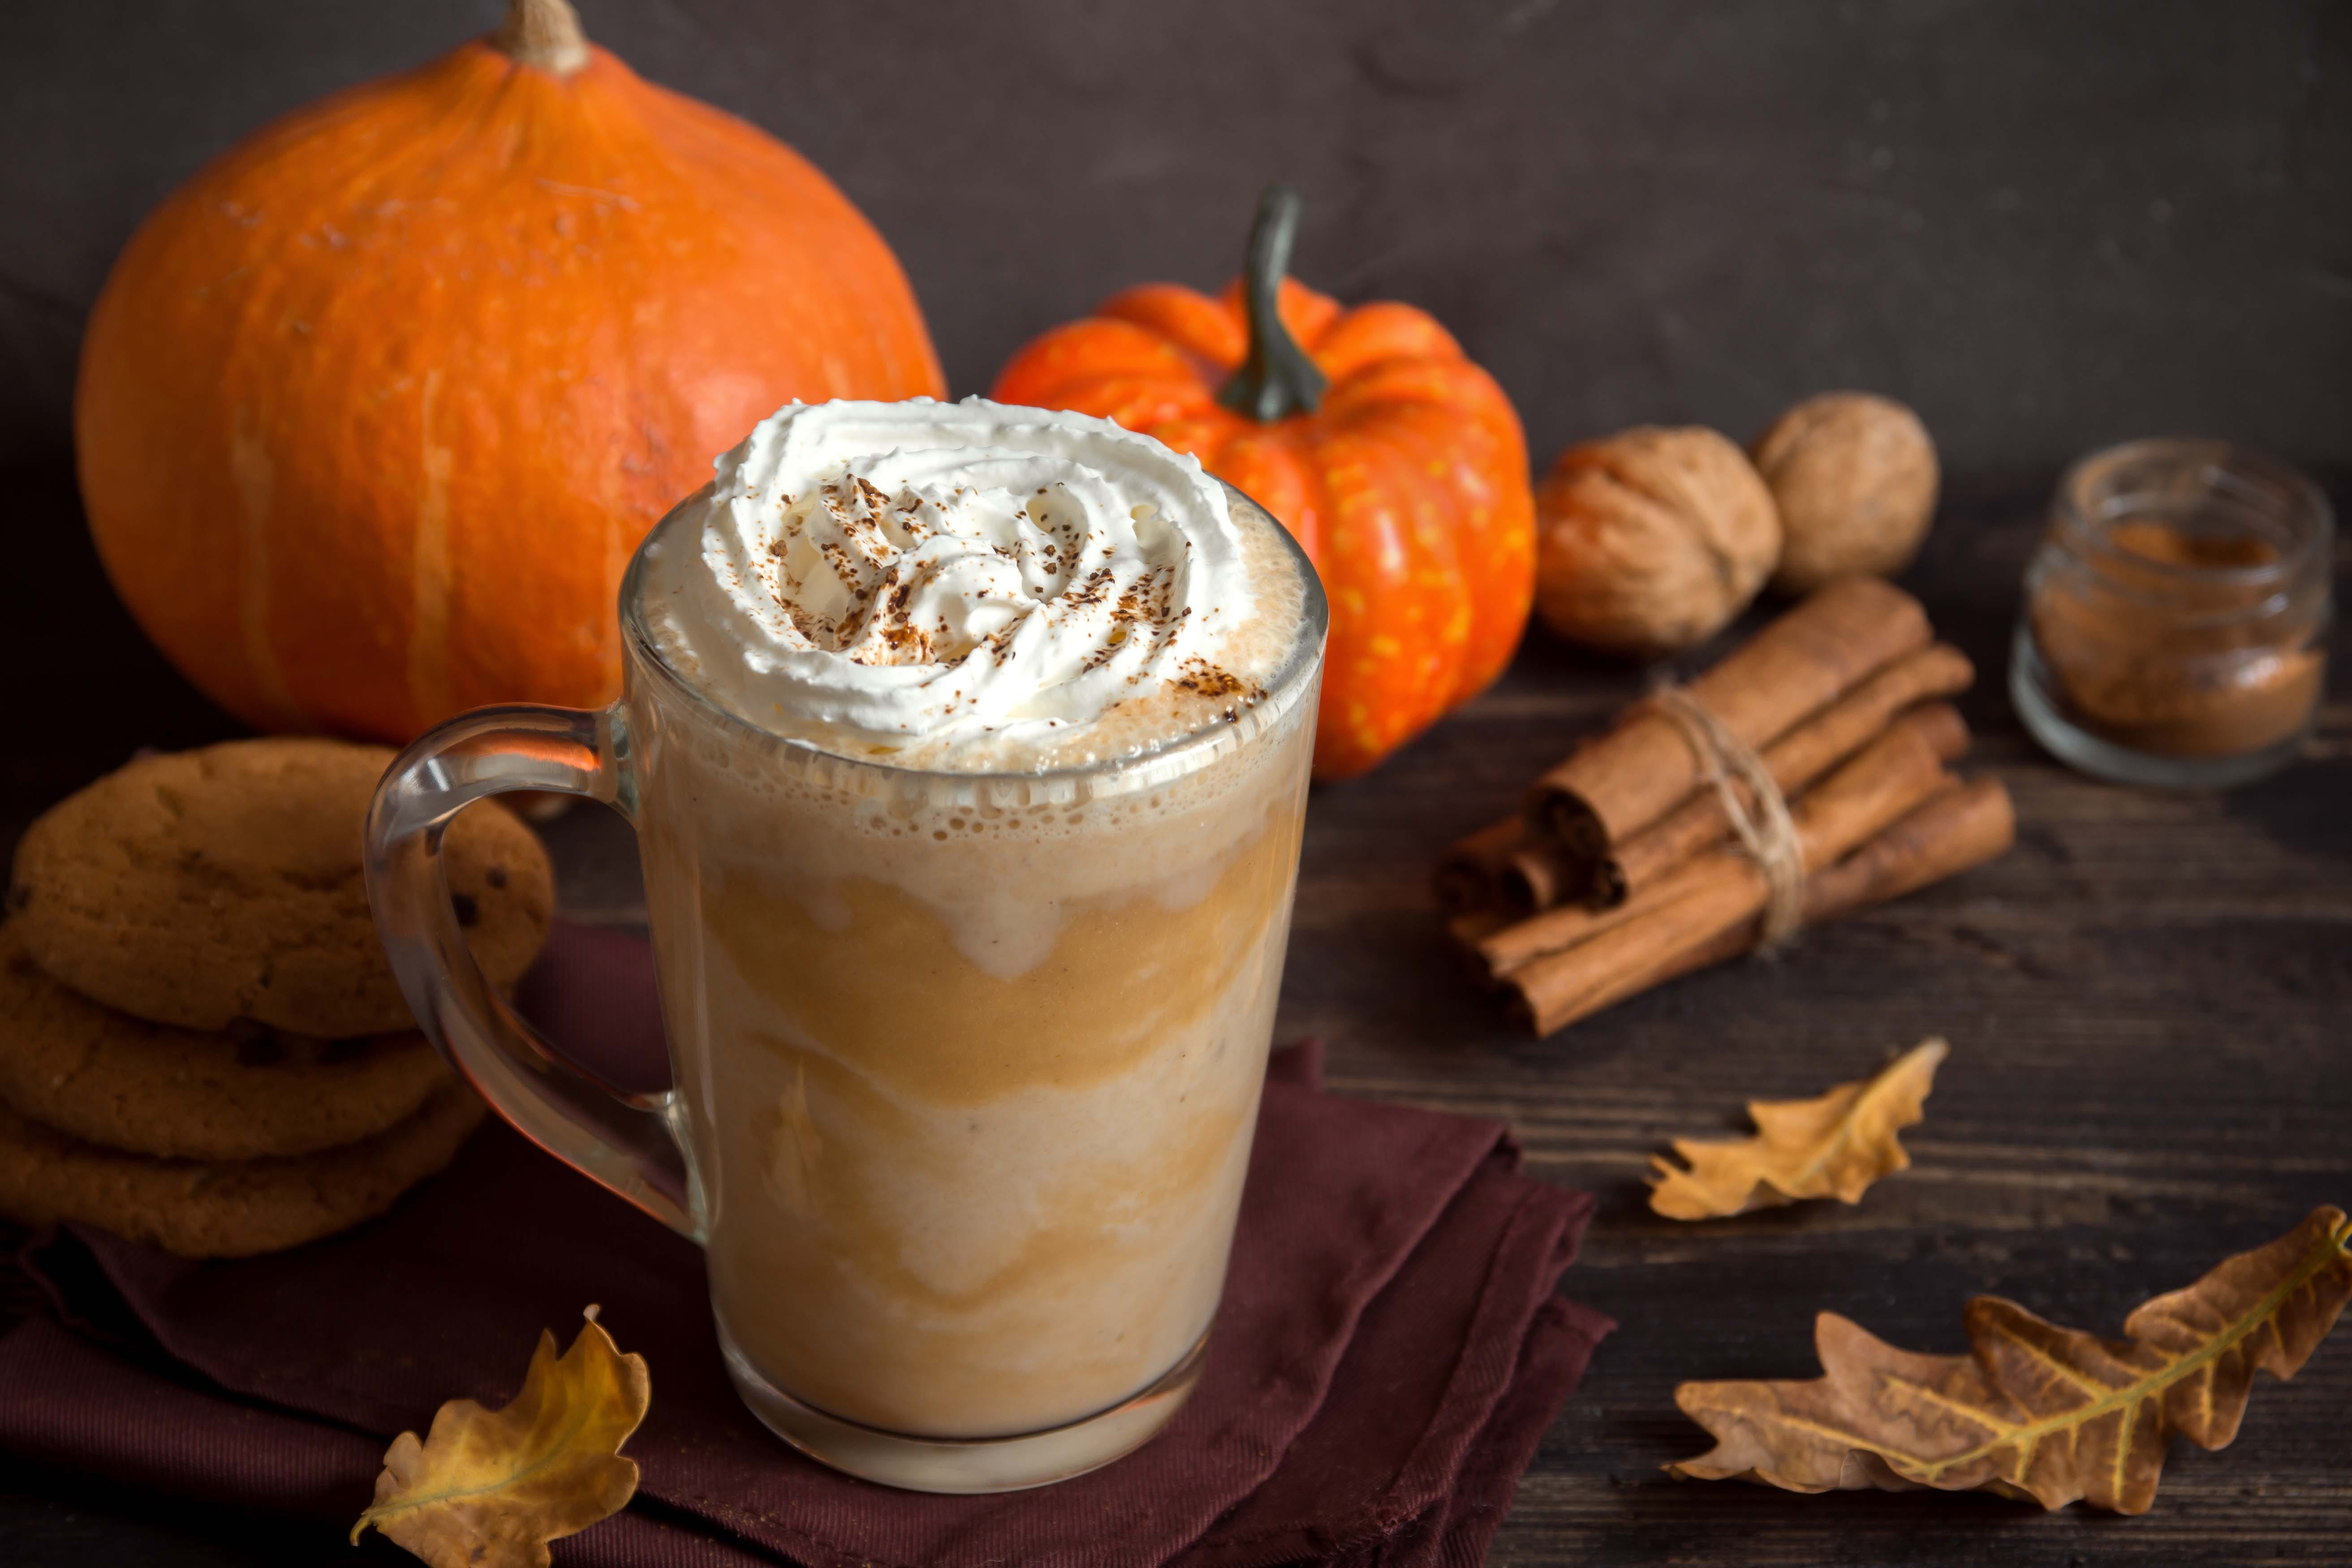 Where to get a pumpkin spice fix: Hint, the fall flavor isn't just at Starbucks